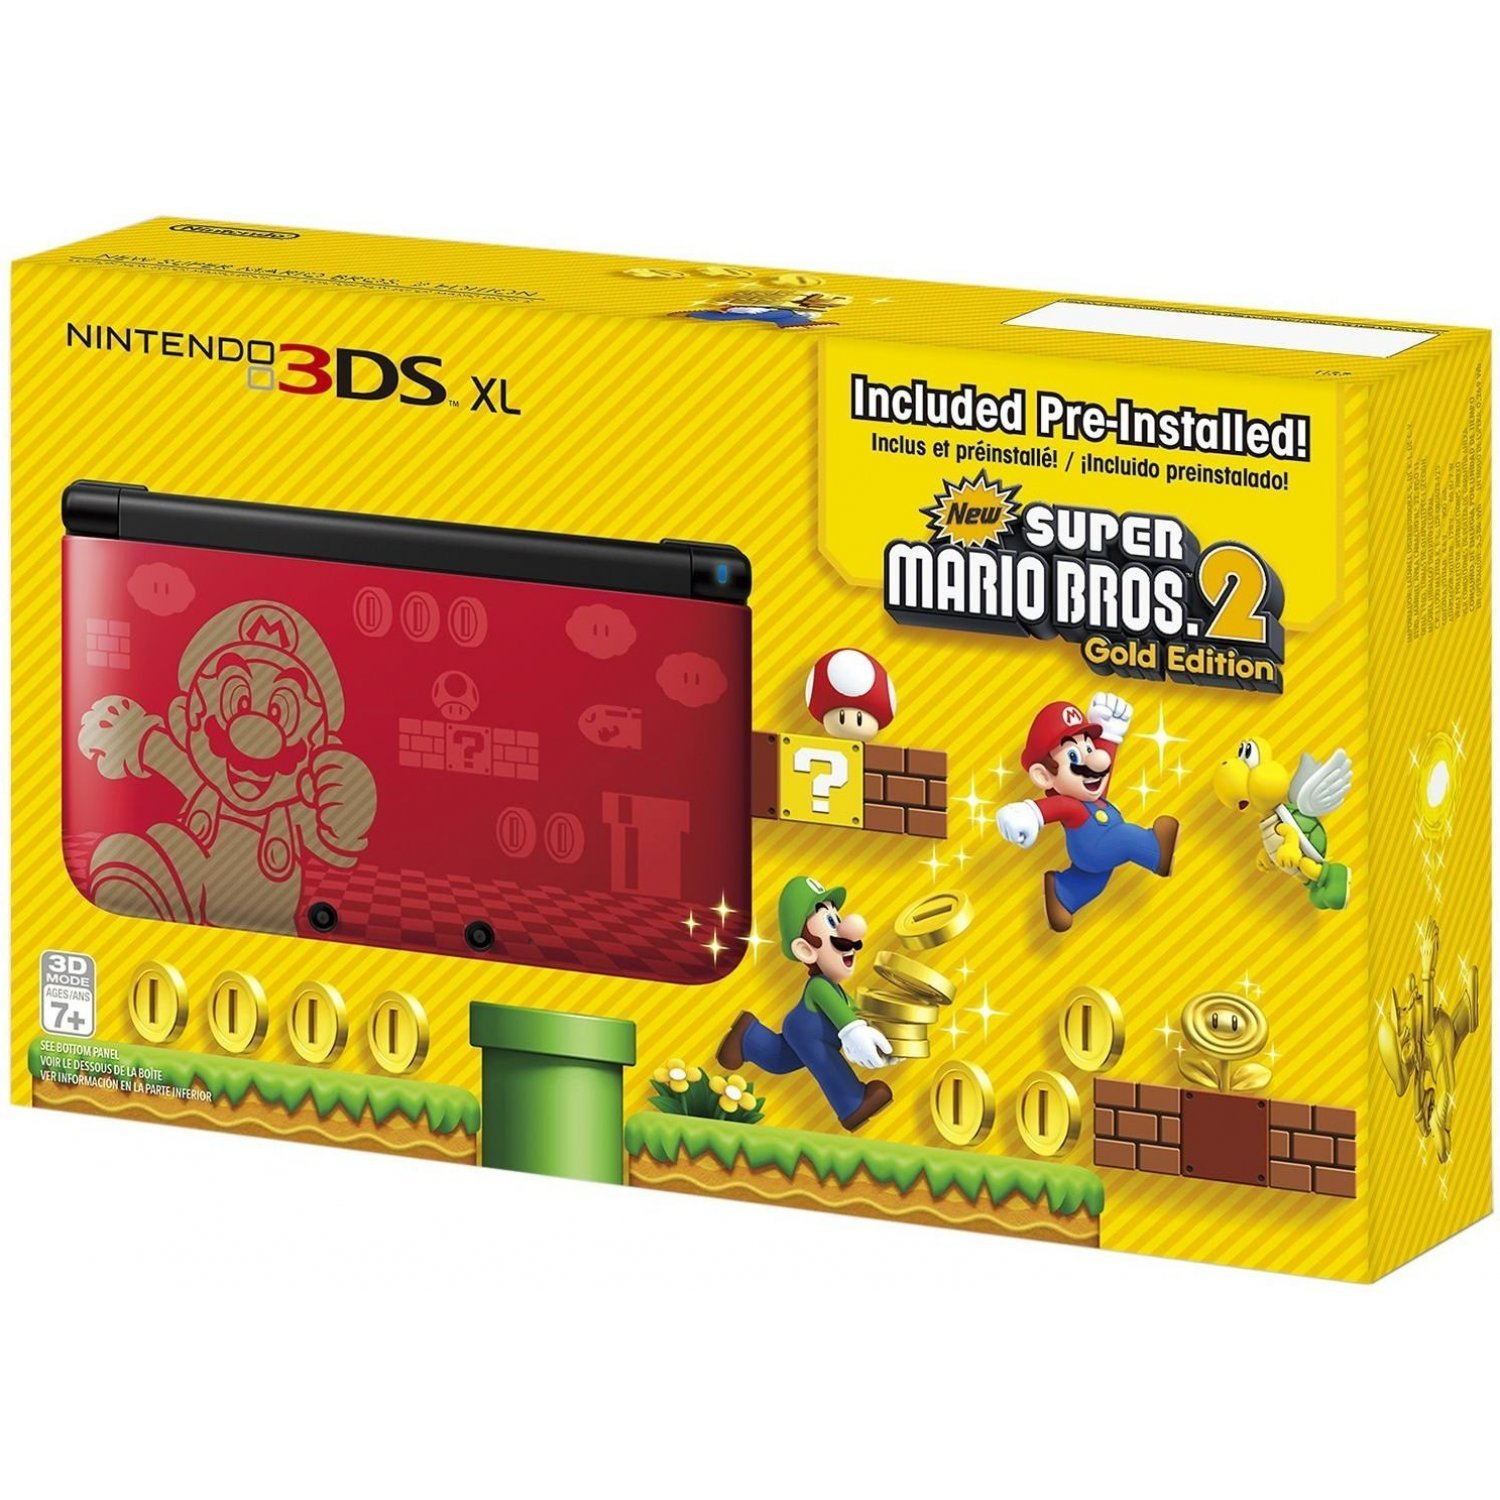 nintendo 3ds xl new super mario bros 2 gold edition. Black Bedroom Furniture Sets. Home Design Ideas